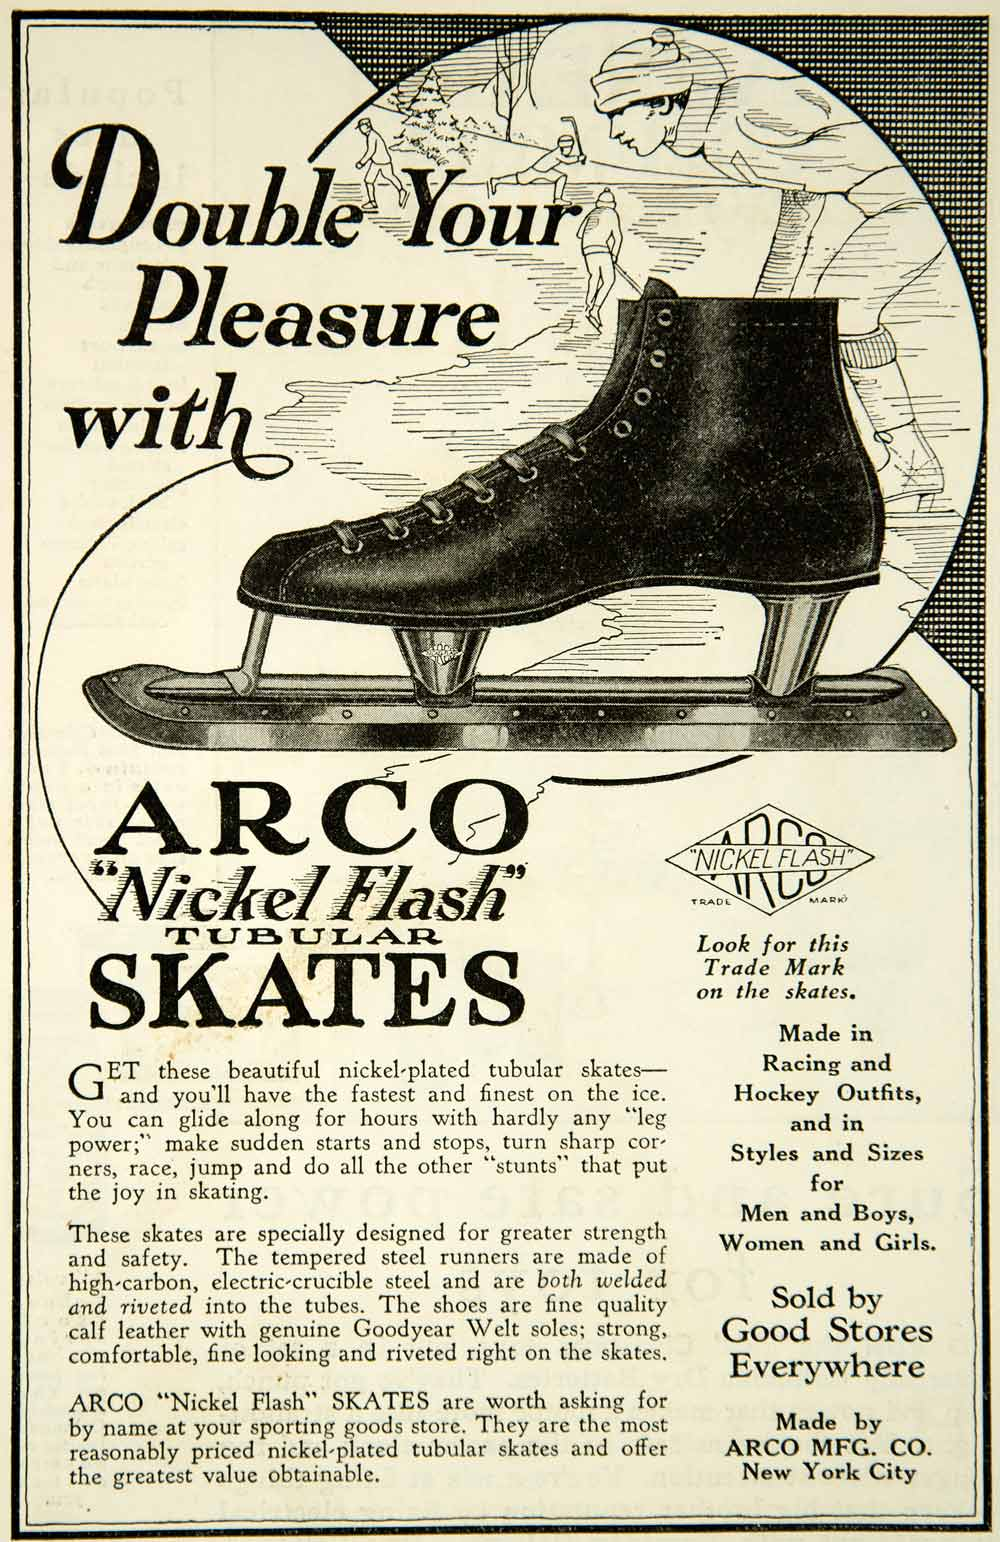 1926 Ad Arco Nickel Flash Tubular Ice Skates Pair Goodyear Welt Sole YAB1